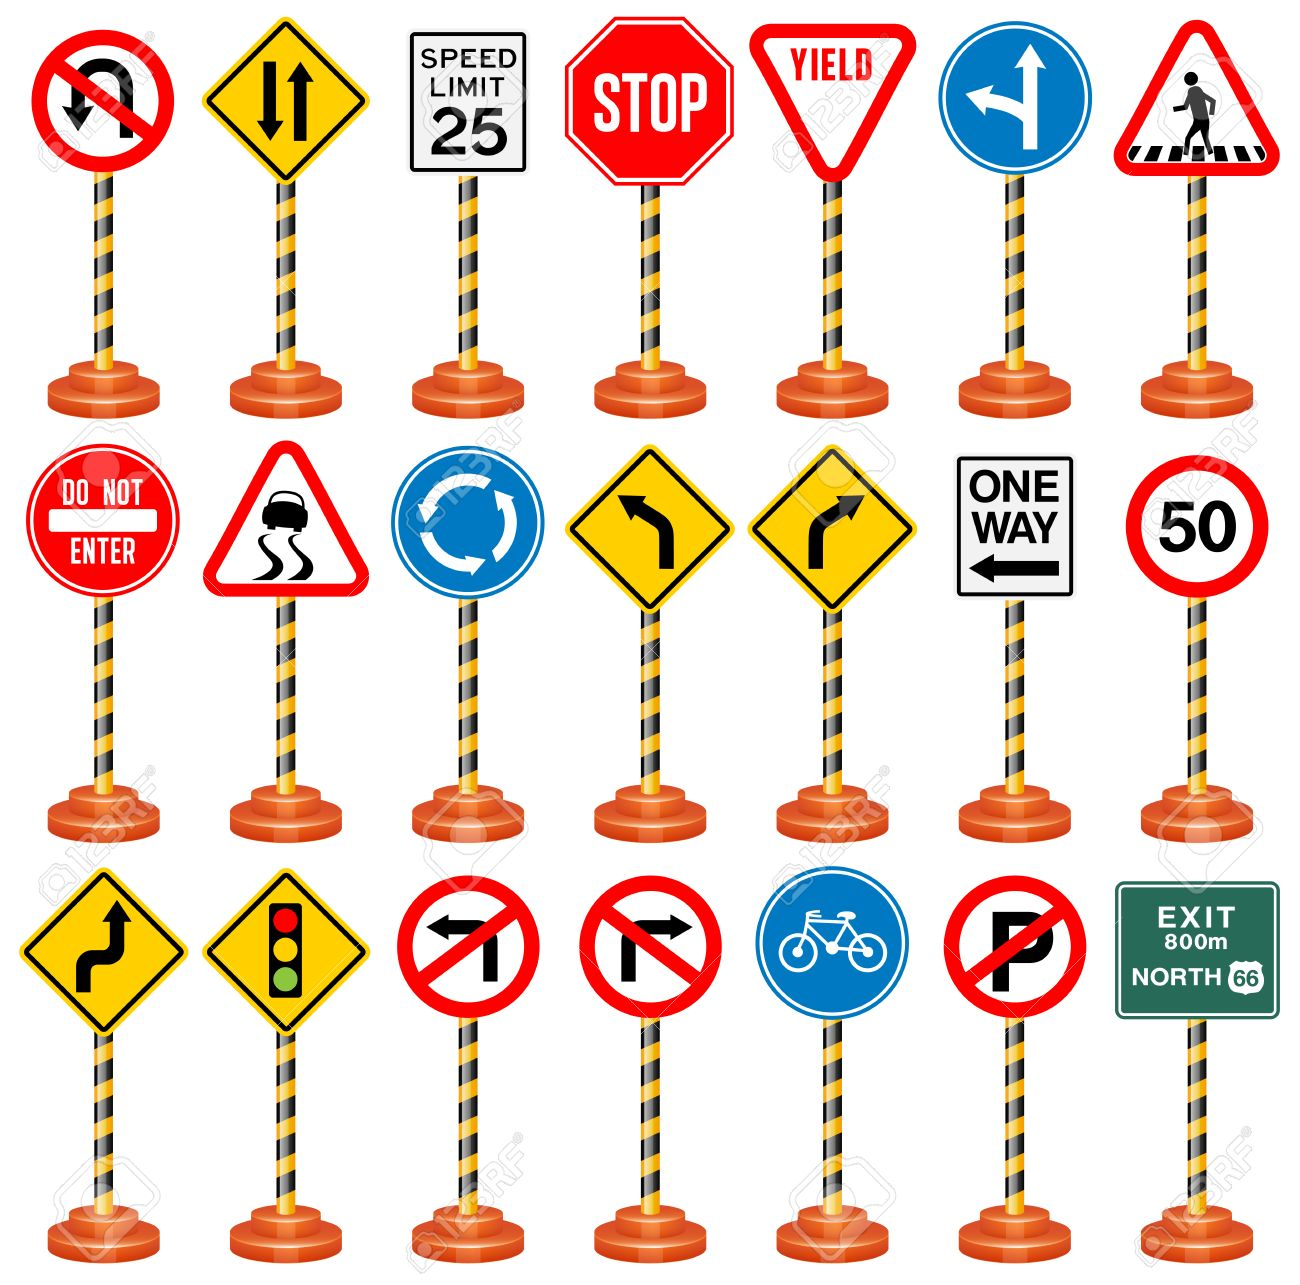 Road signs traffic signs transportation safety travel stock vector 48073246